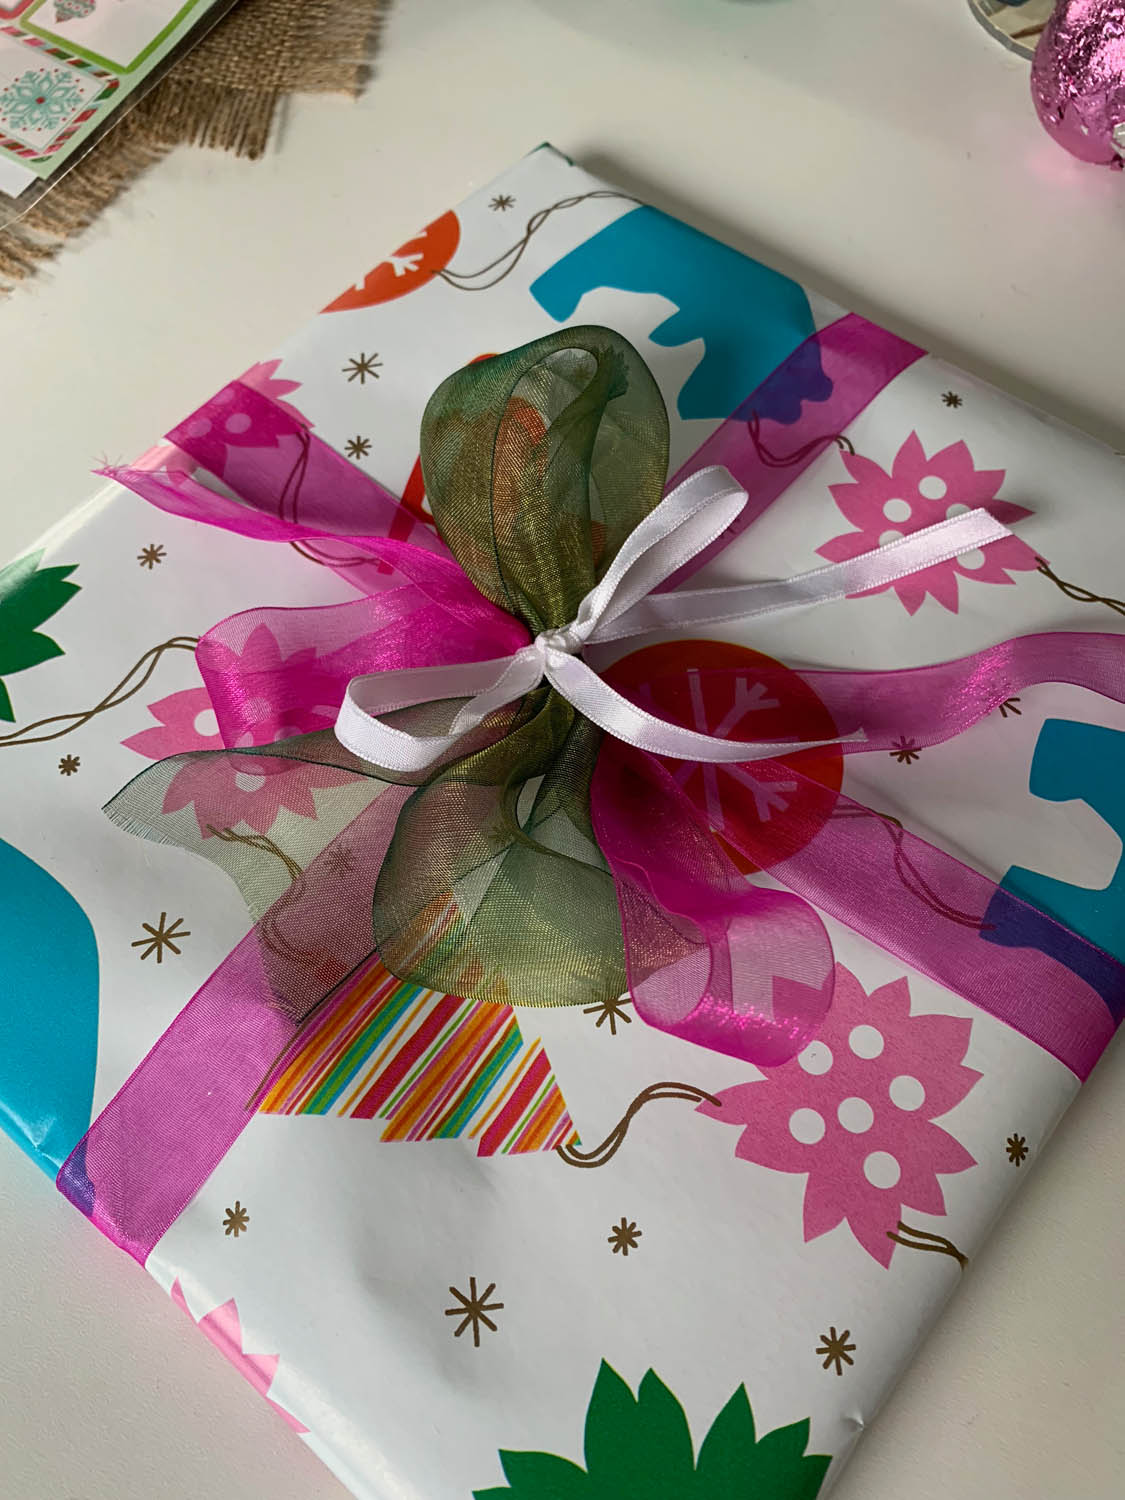 colorful wrapped gift tied with multiple ribbon sizes and colors